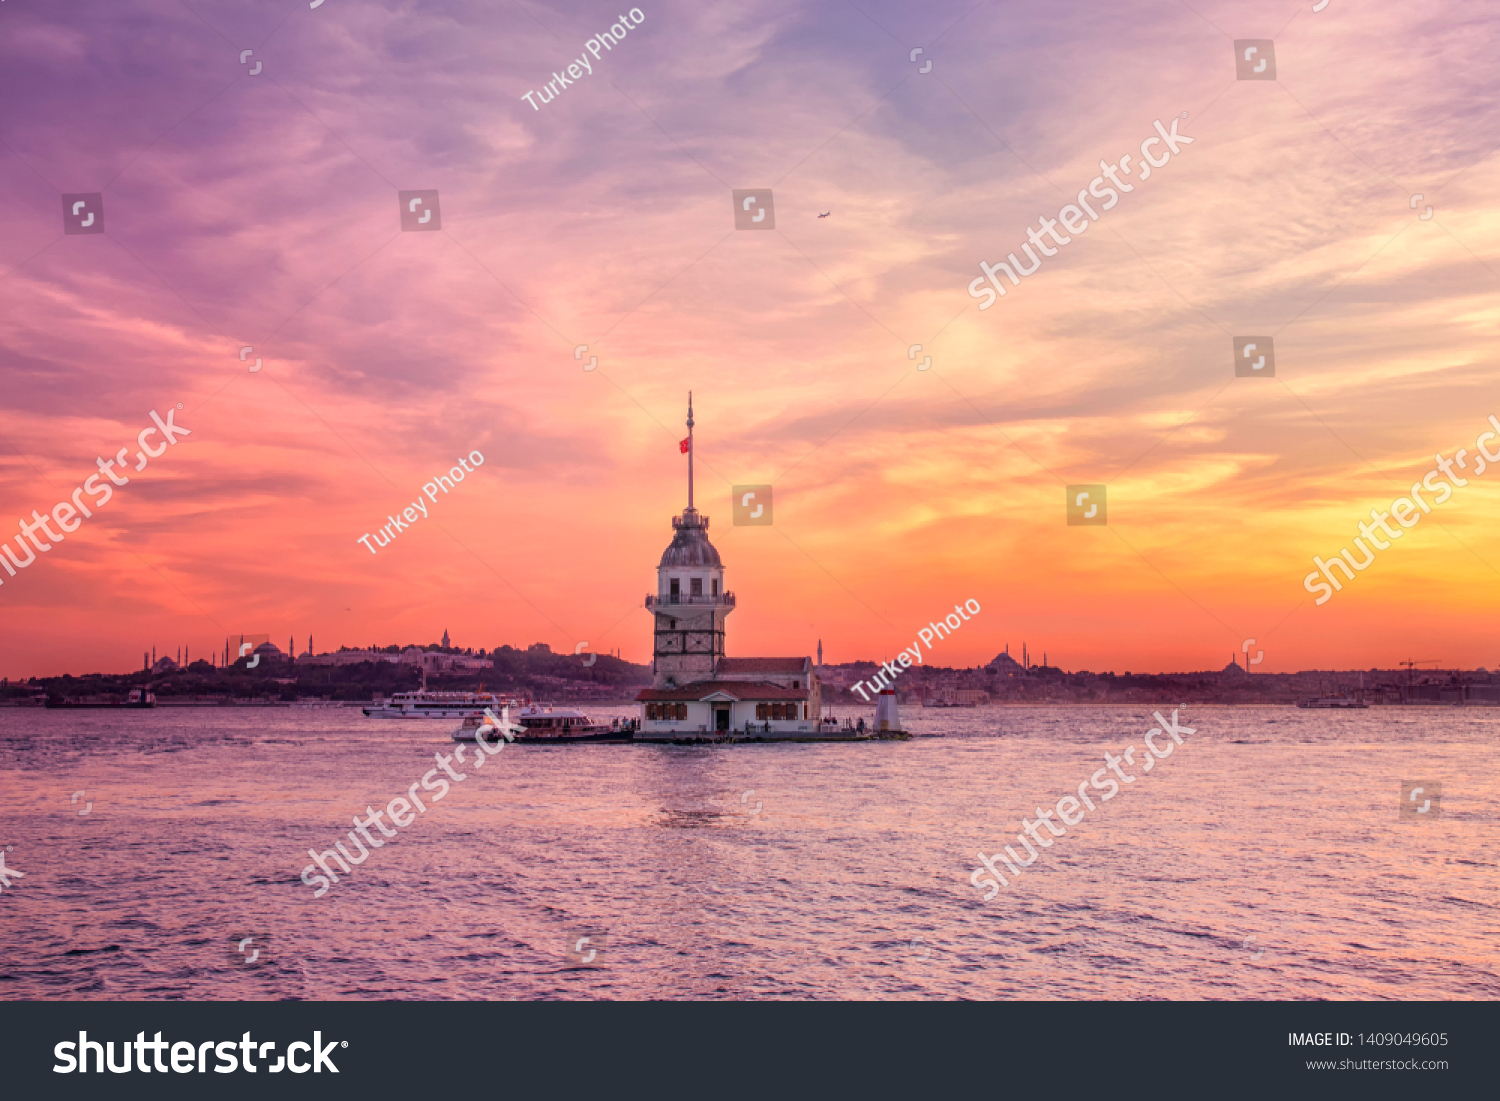 stock-photo-maiden-s-tower-in-istanbul-b